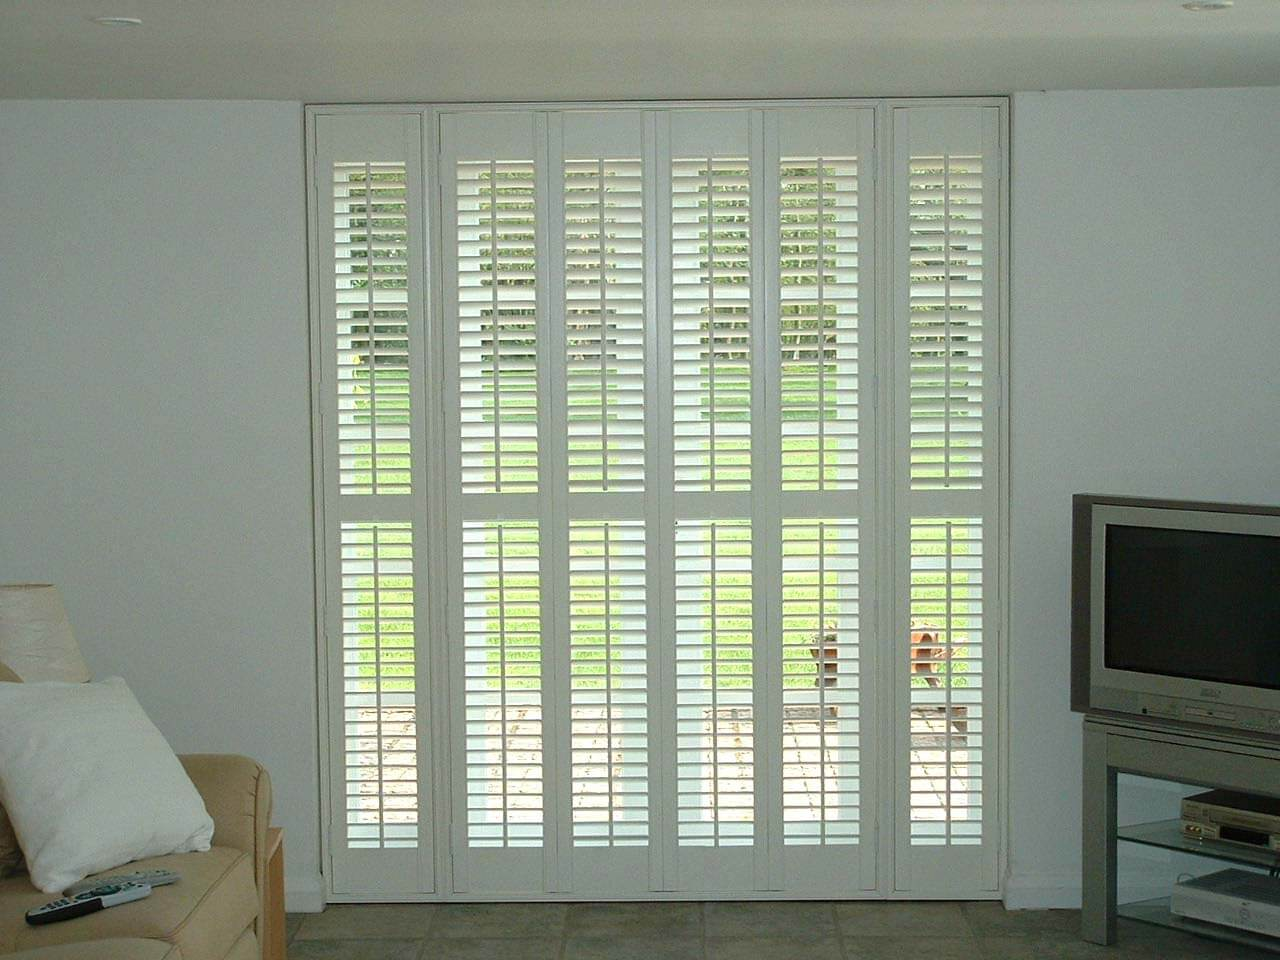 designline door decorative louver interior movable htm company shutters shutter southern layer